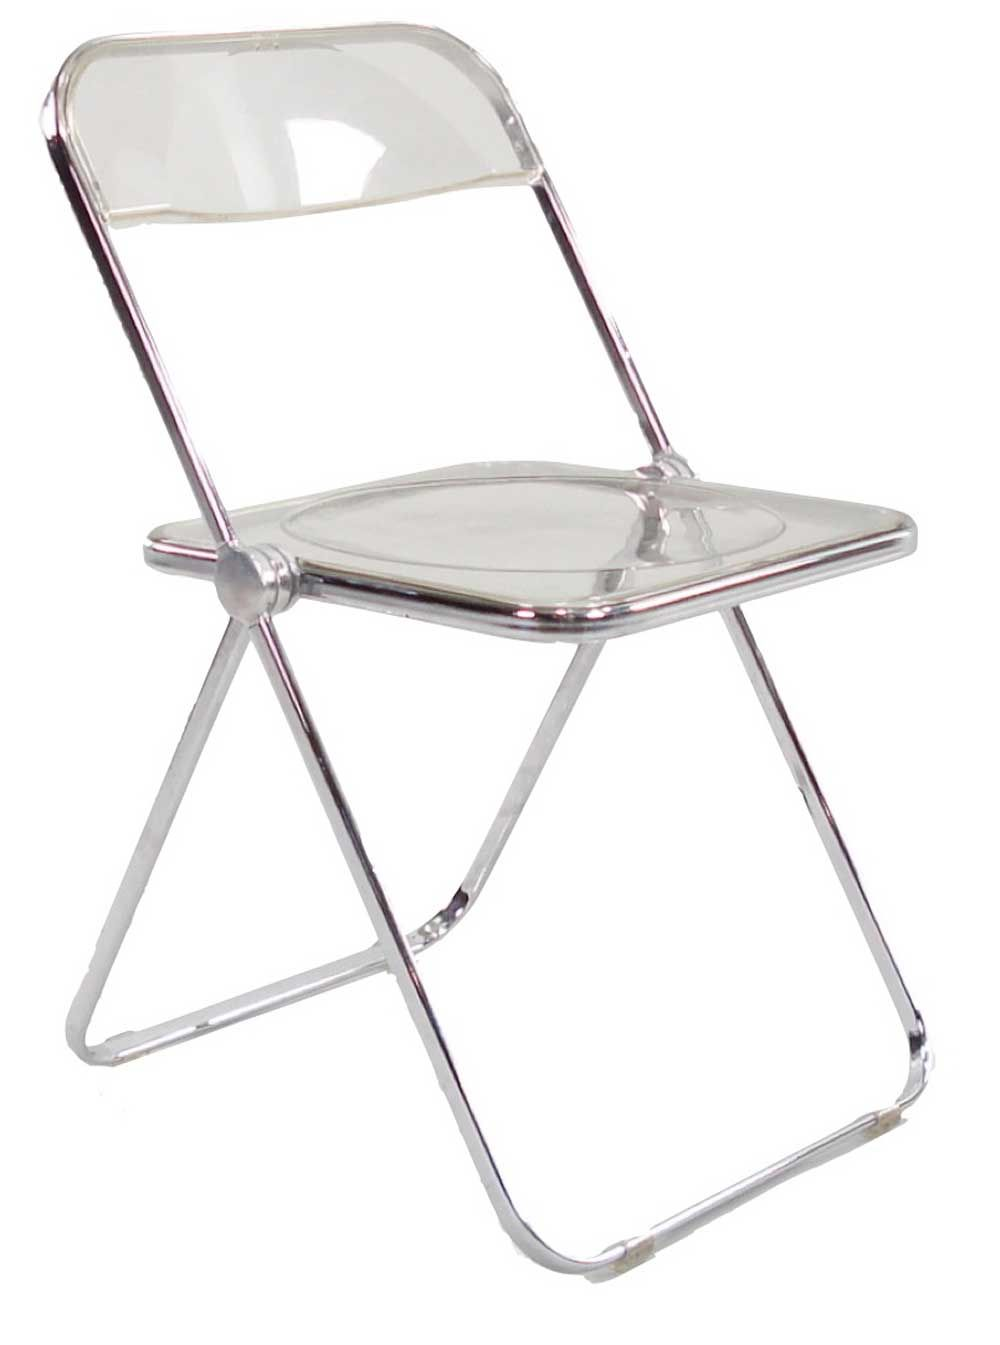 a fritz folding chairs long island city. lusinite chairs | lucite folding for perfect comfort office furniture a fritz long island city